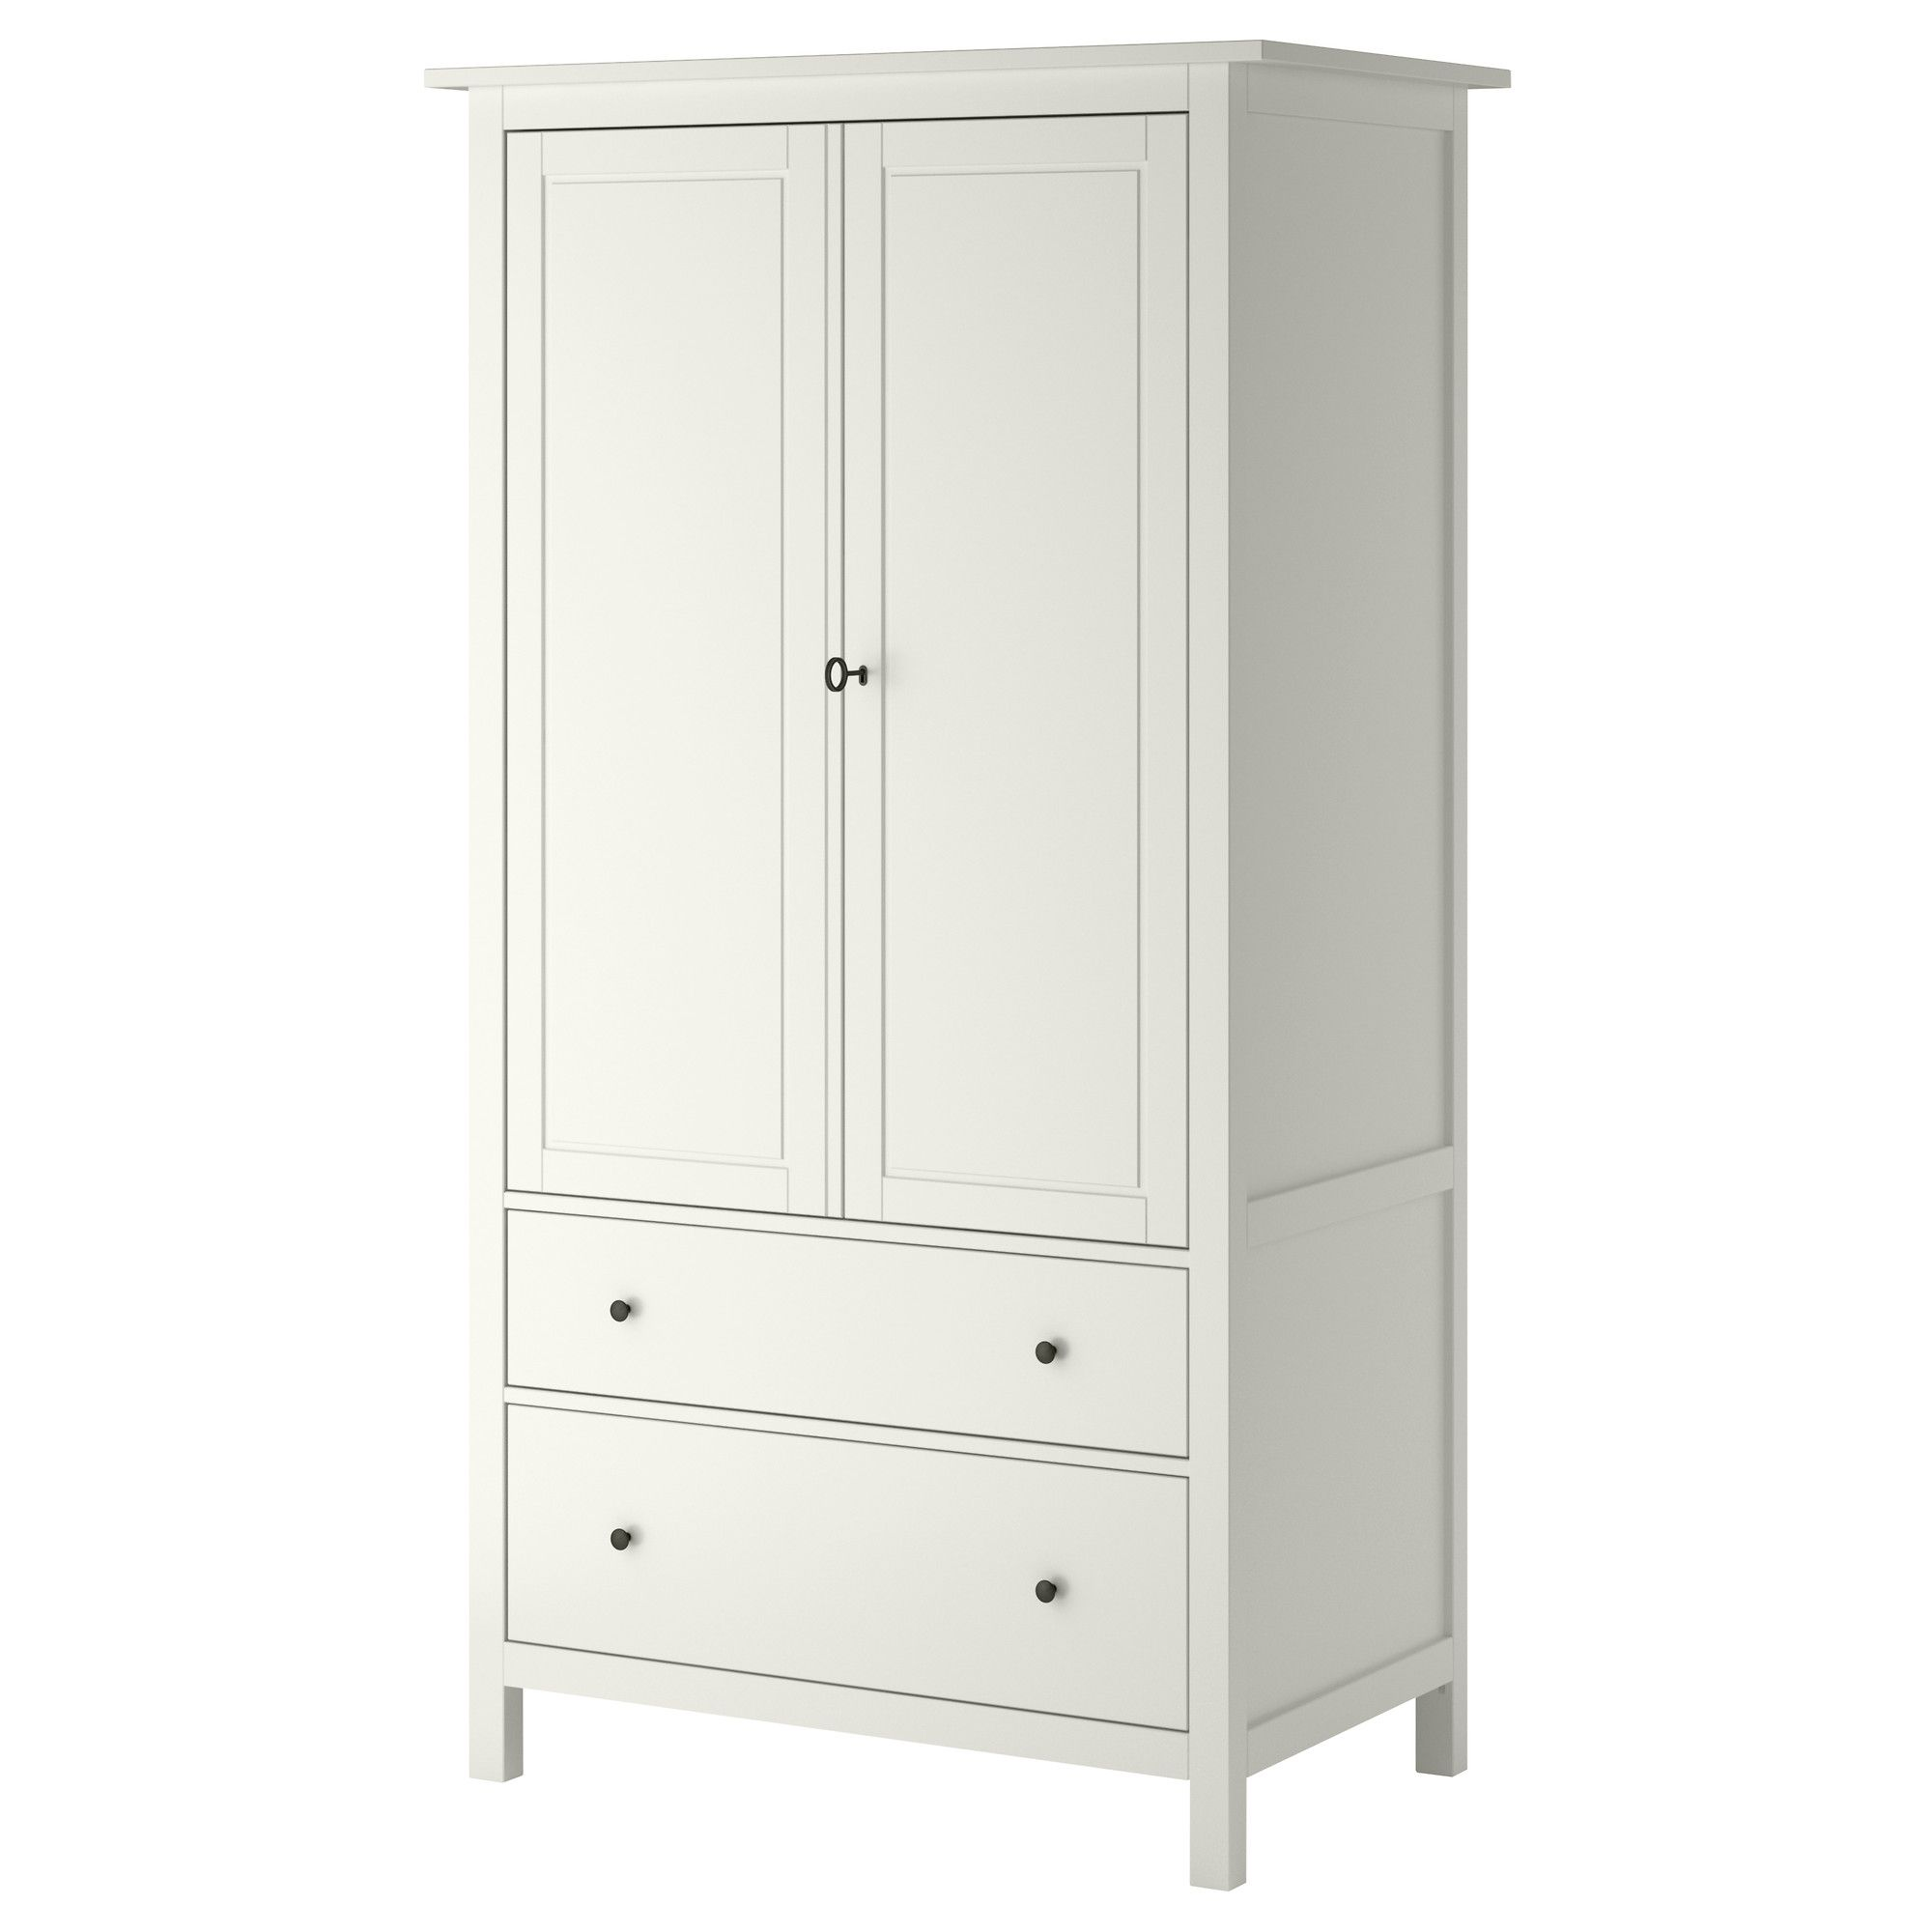 Ikea hemnes schrank spiegel  HEMNES white wardrobe with four adjustable shelves and two clothes ...